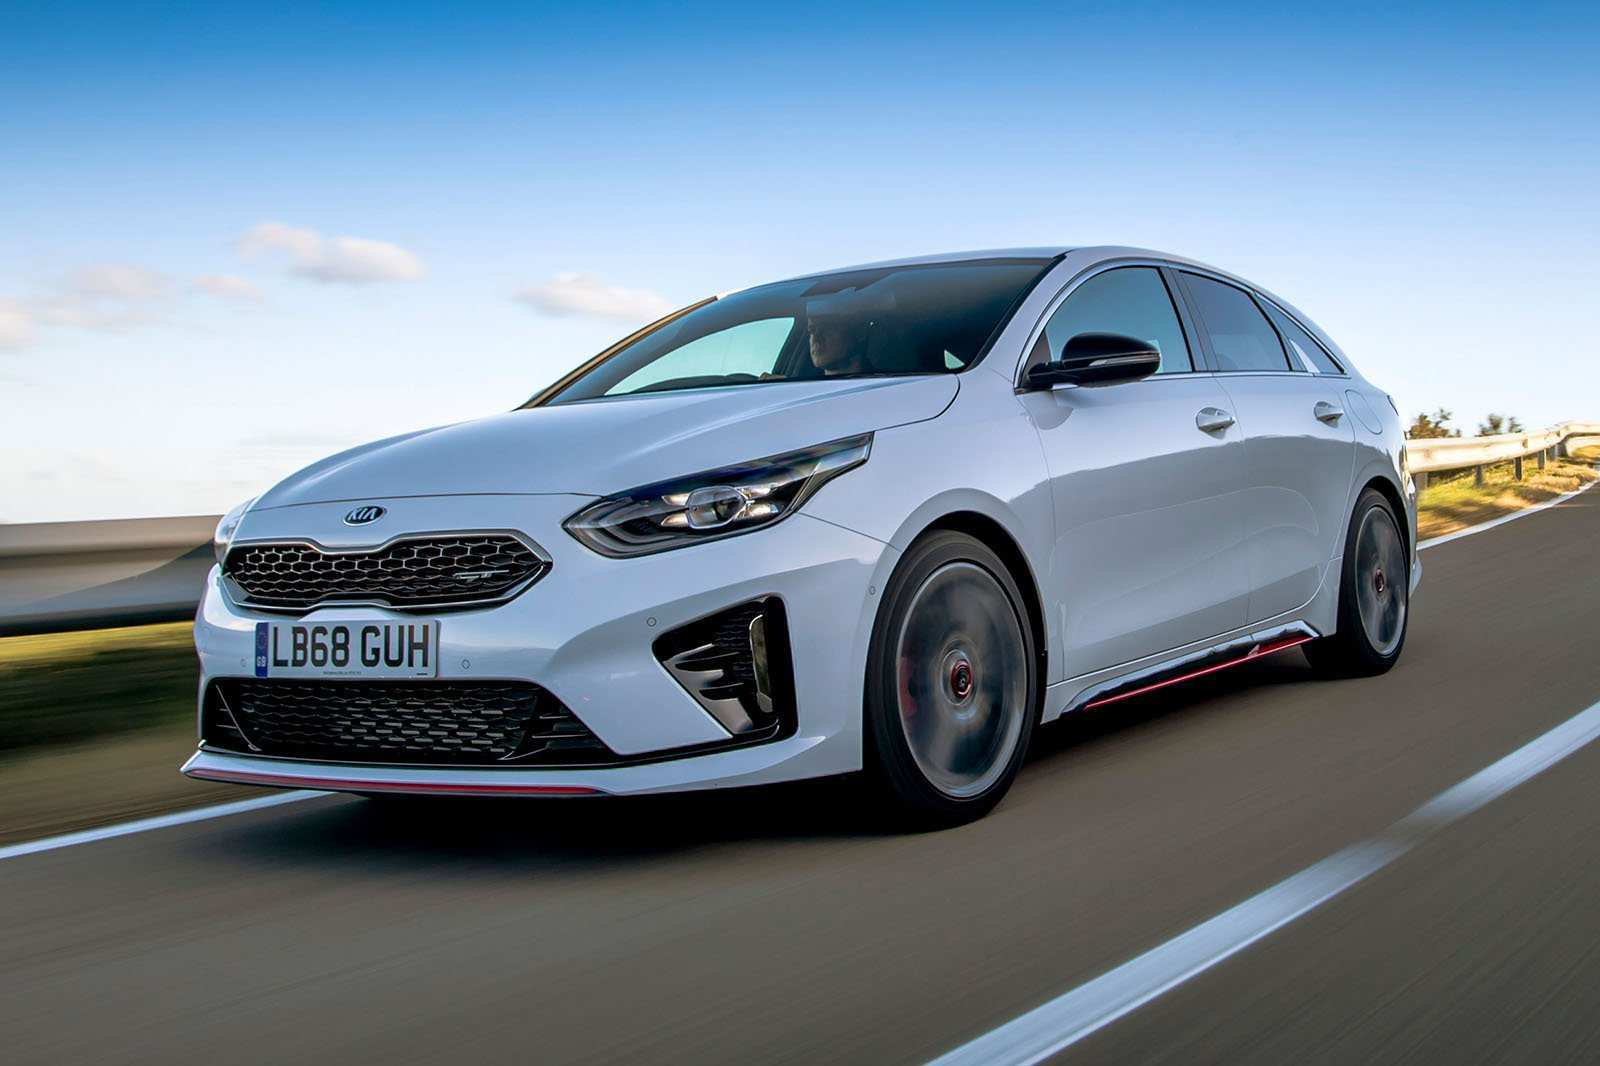 22 Concept of Kia Gt 2019 Configurations with Kia Gt 2019